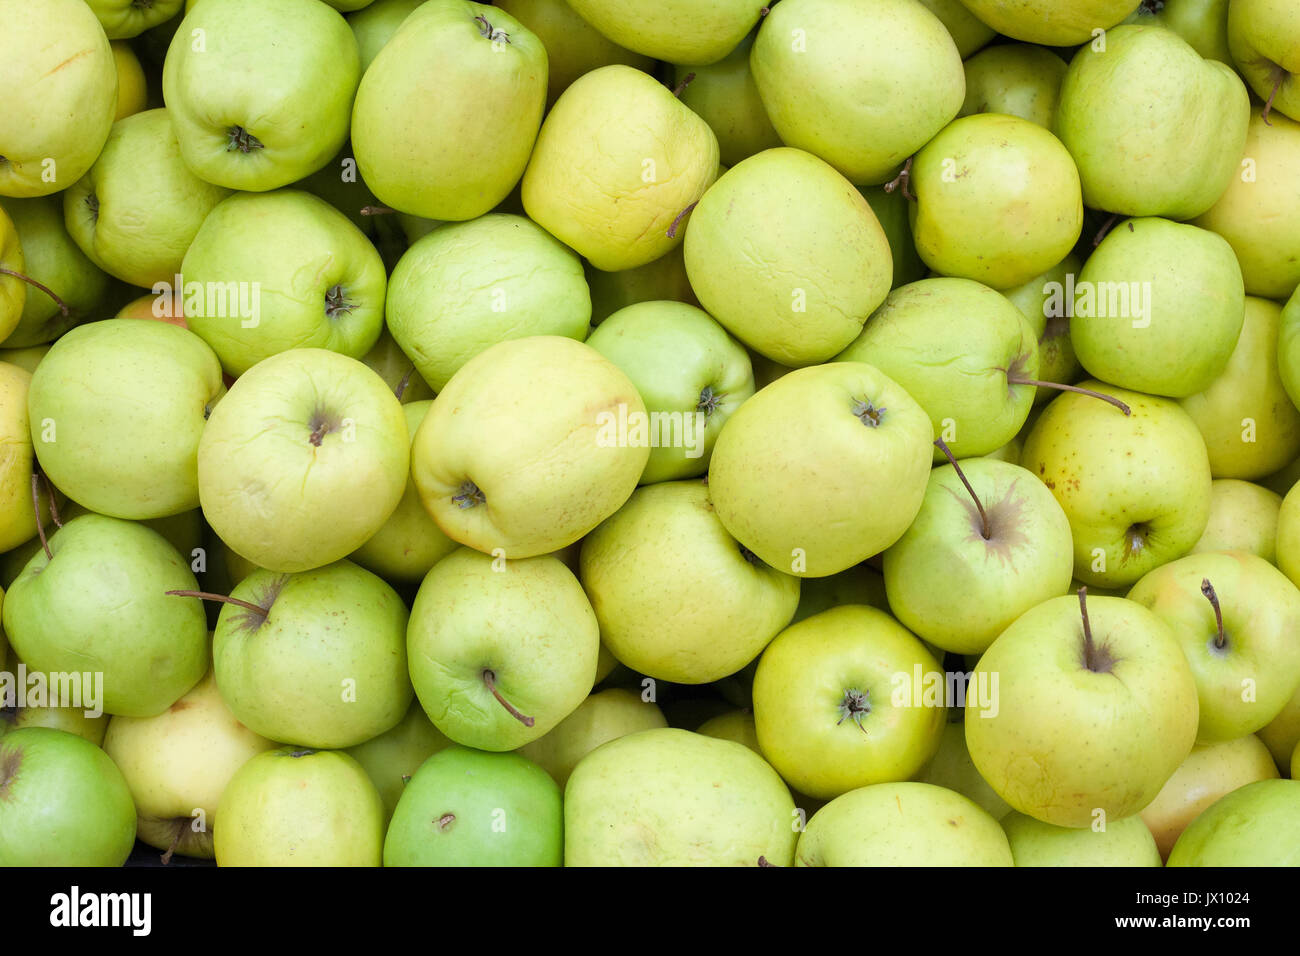 apples background green apple raw fruit and vegetable backgrounds